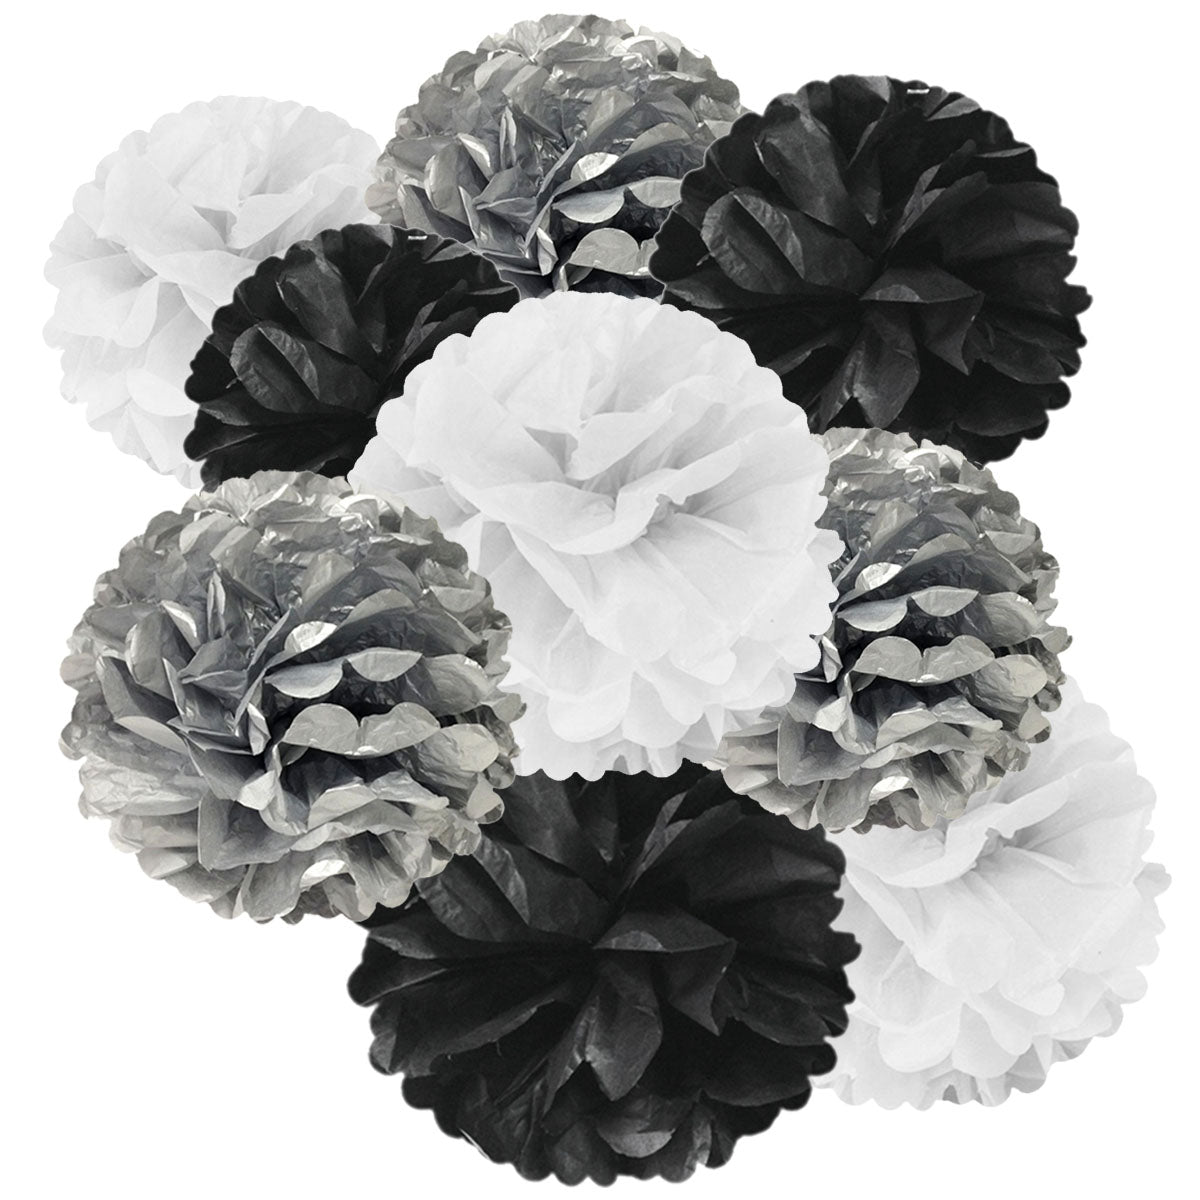 Wrapables Set of 9 Tissue Pom Pom Party Decorations, Black/Silver/White